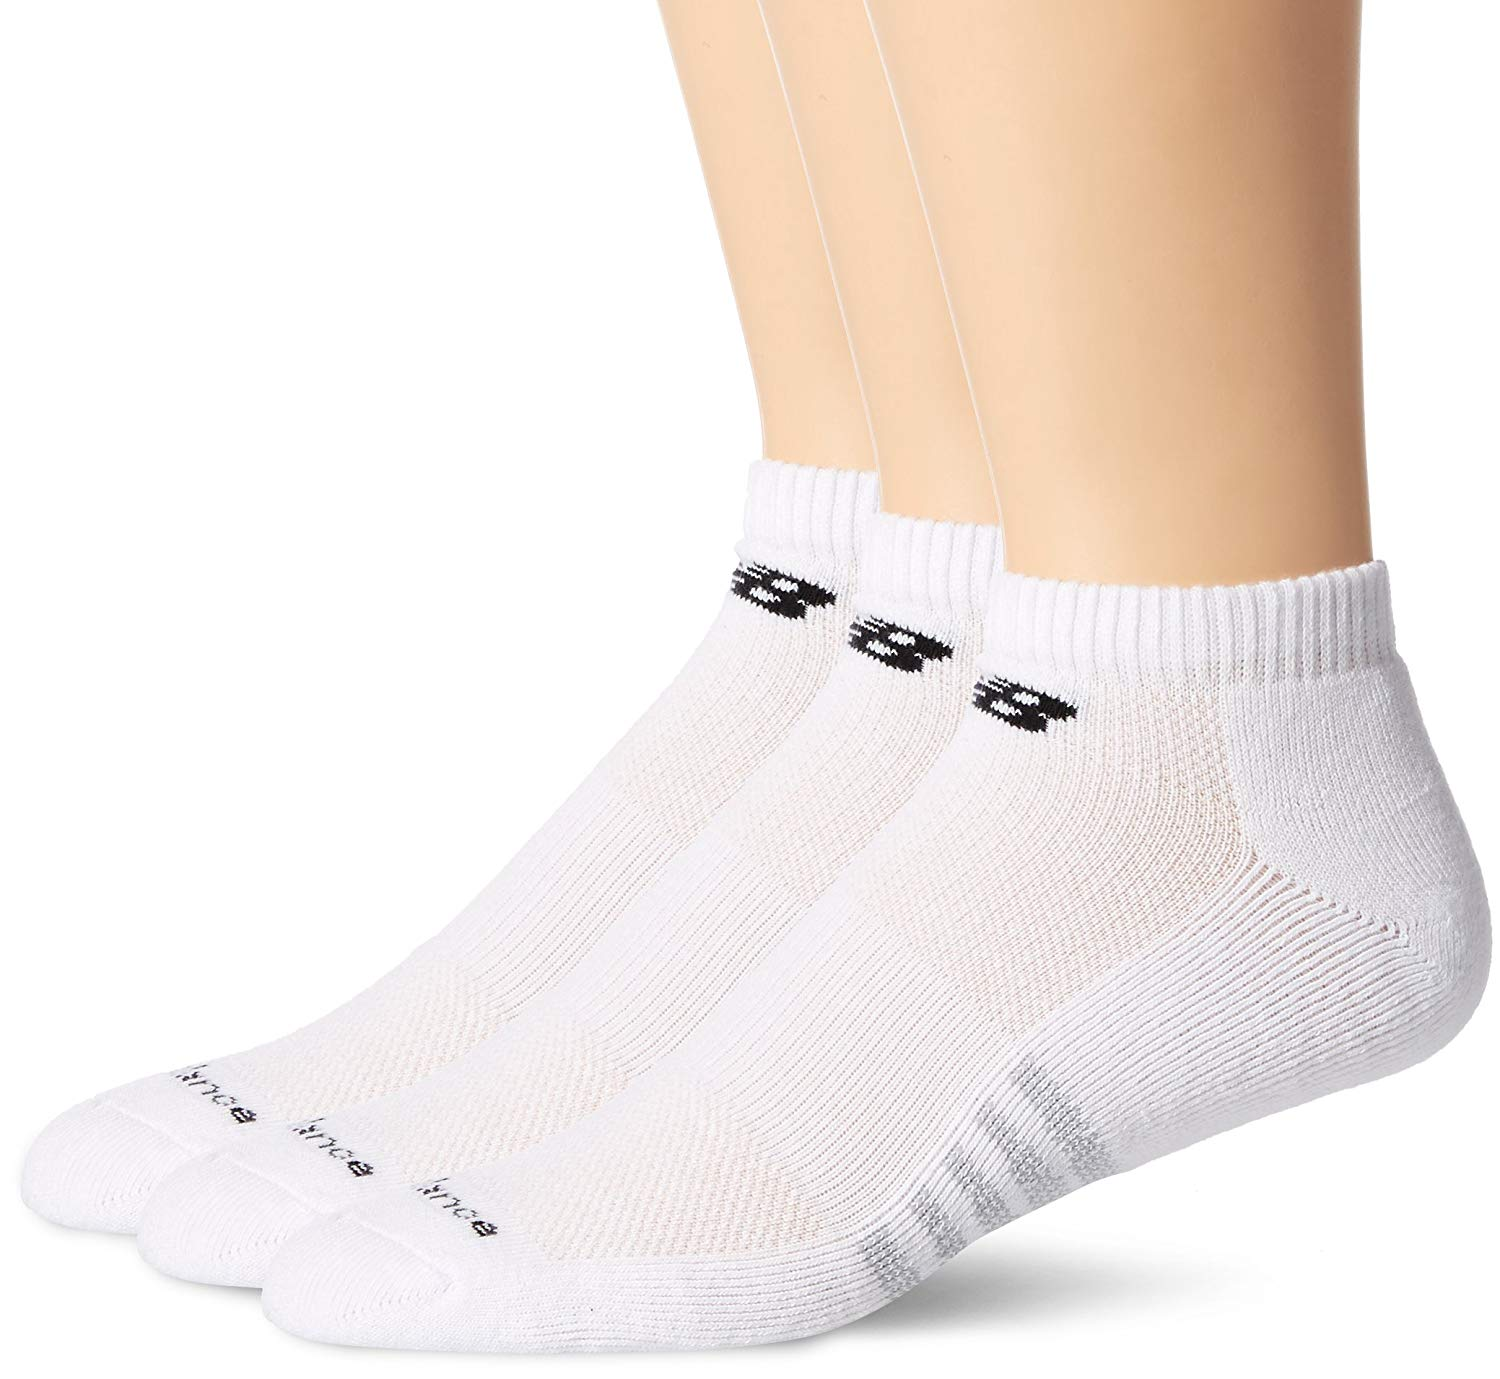 c31ad80eb4589 New Balance - Mens Performance Cotton Low Cut 3 Pack Socks